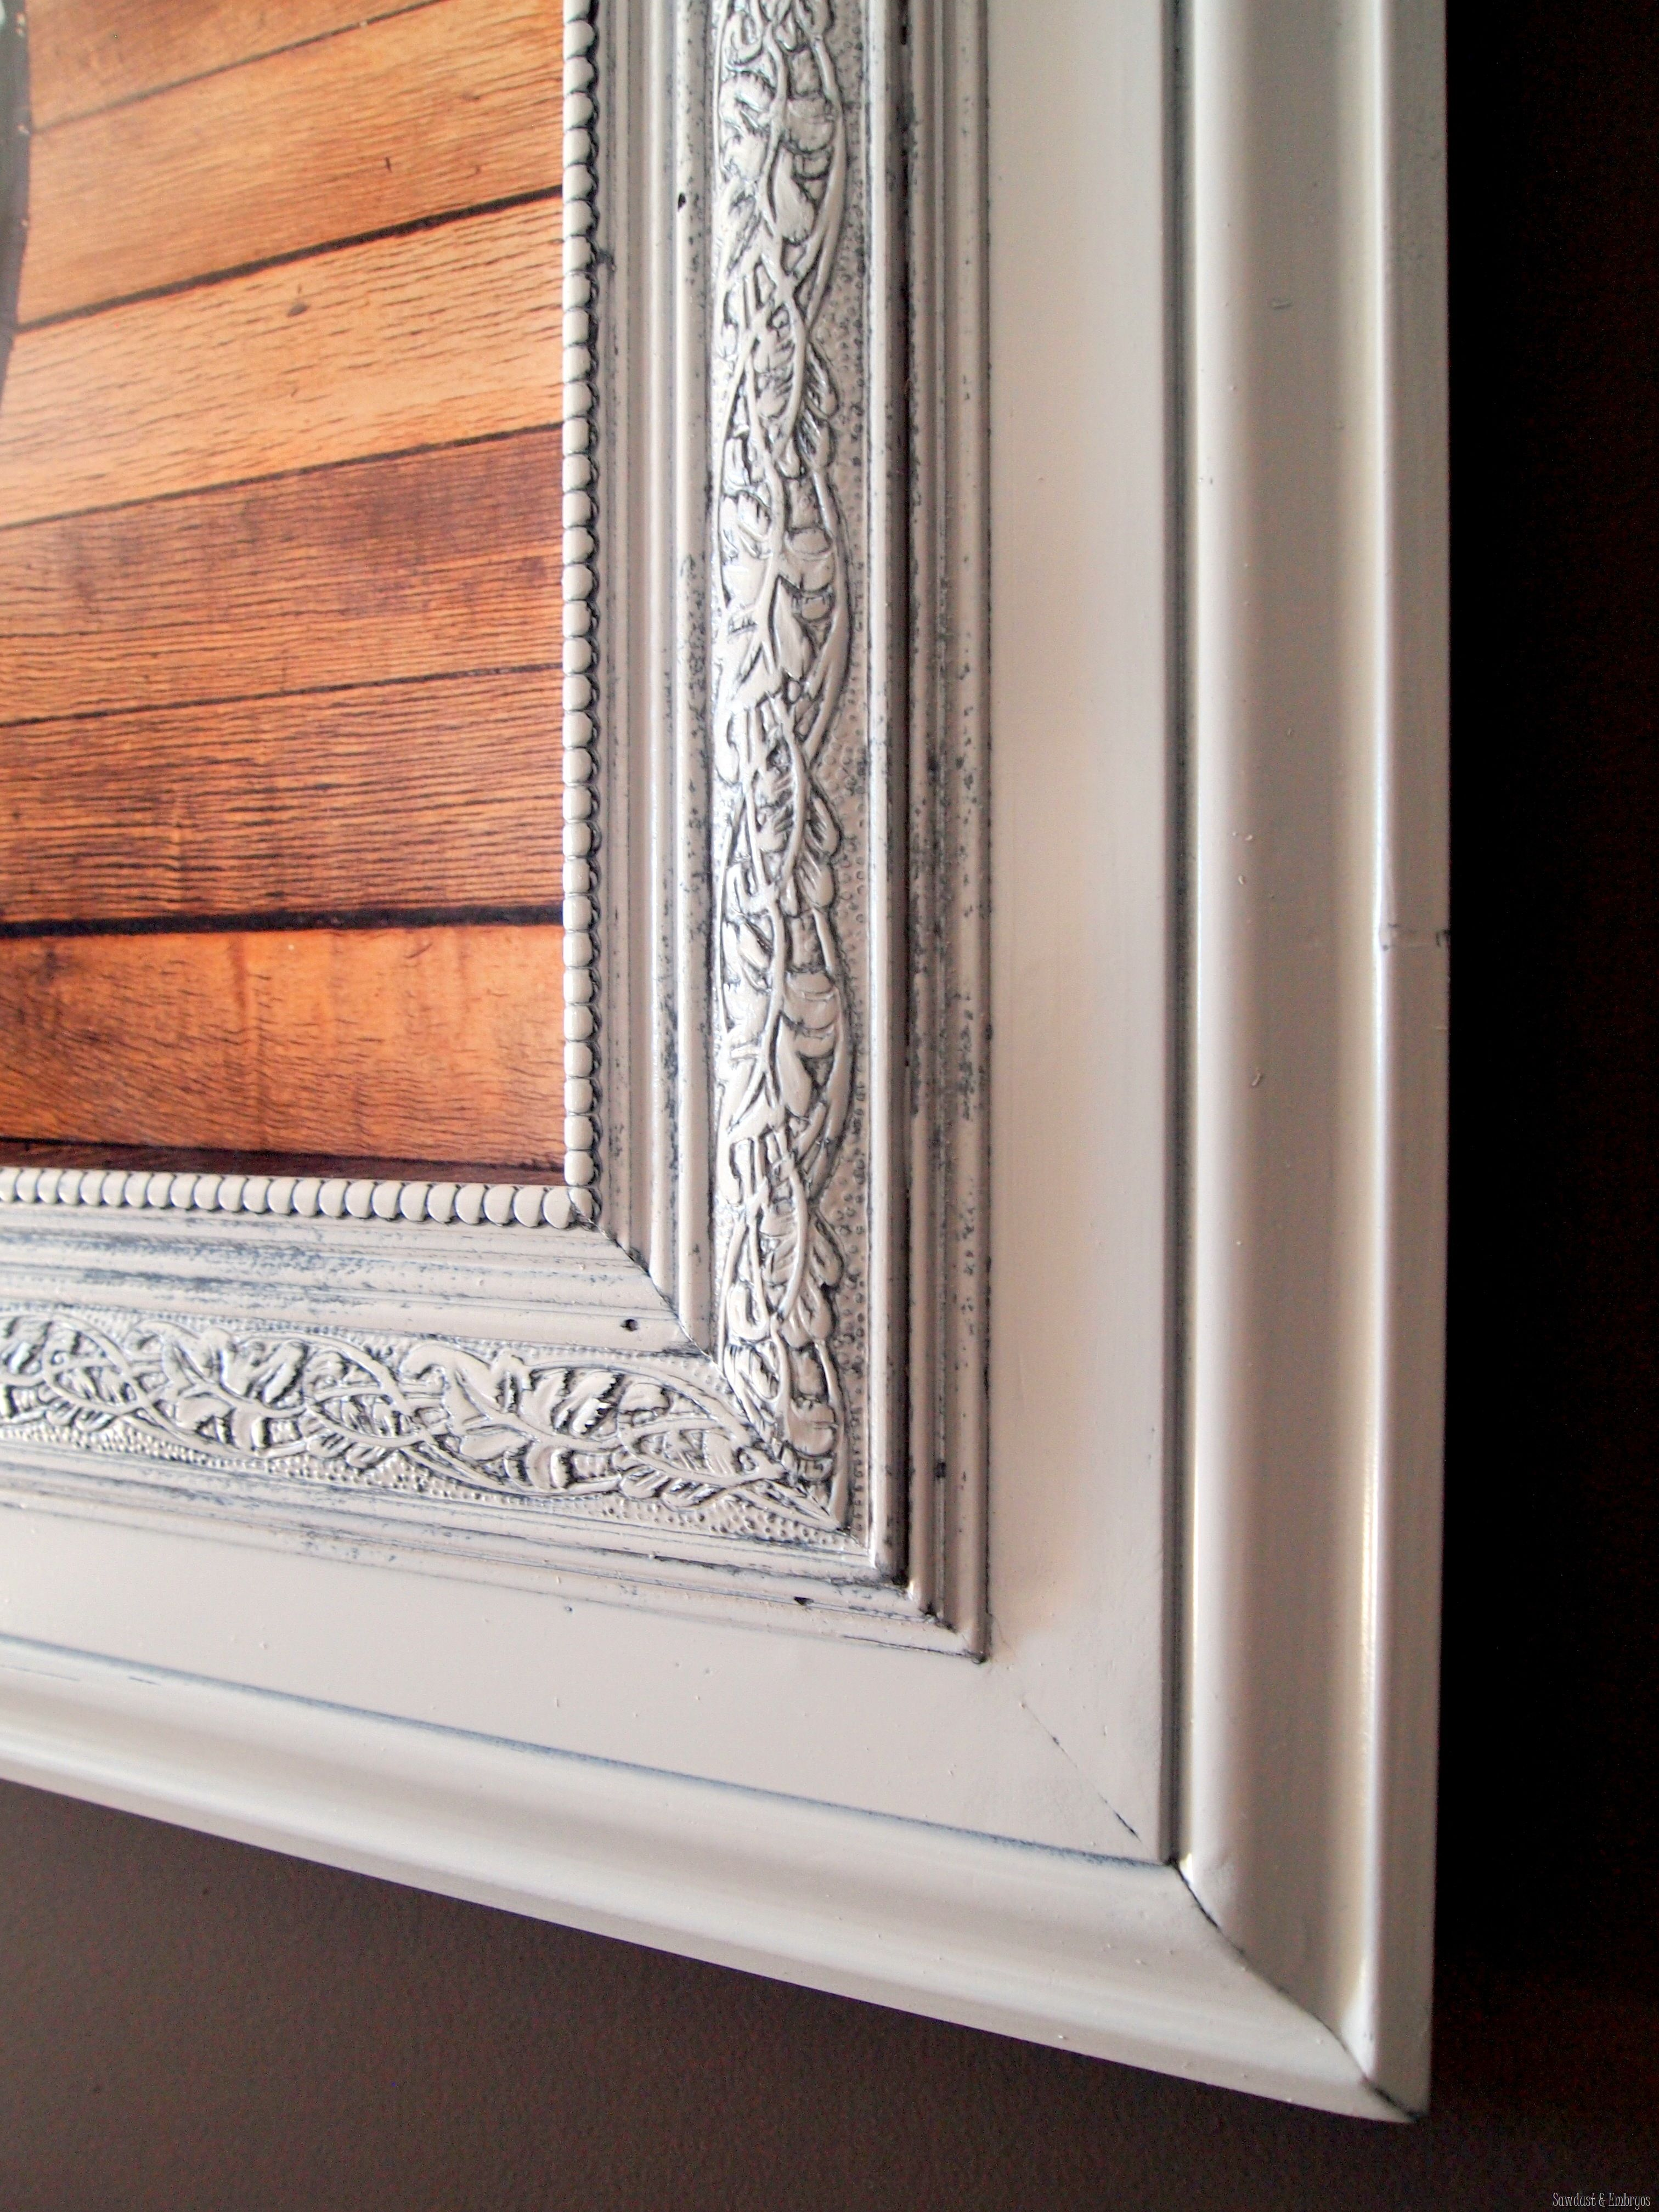 Build a custom frame out of trim pieces craft woodworking and build your own custom picture frame without spending a fortune sawdust and embryos jeuxipadfo Choice Image